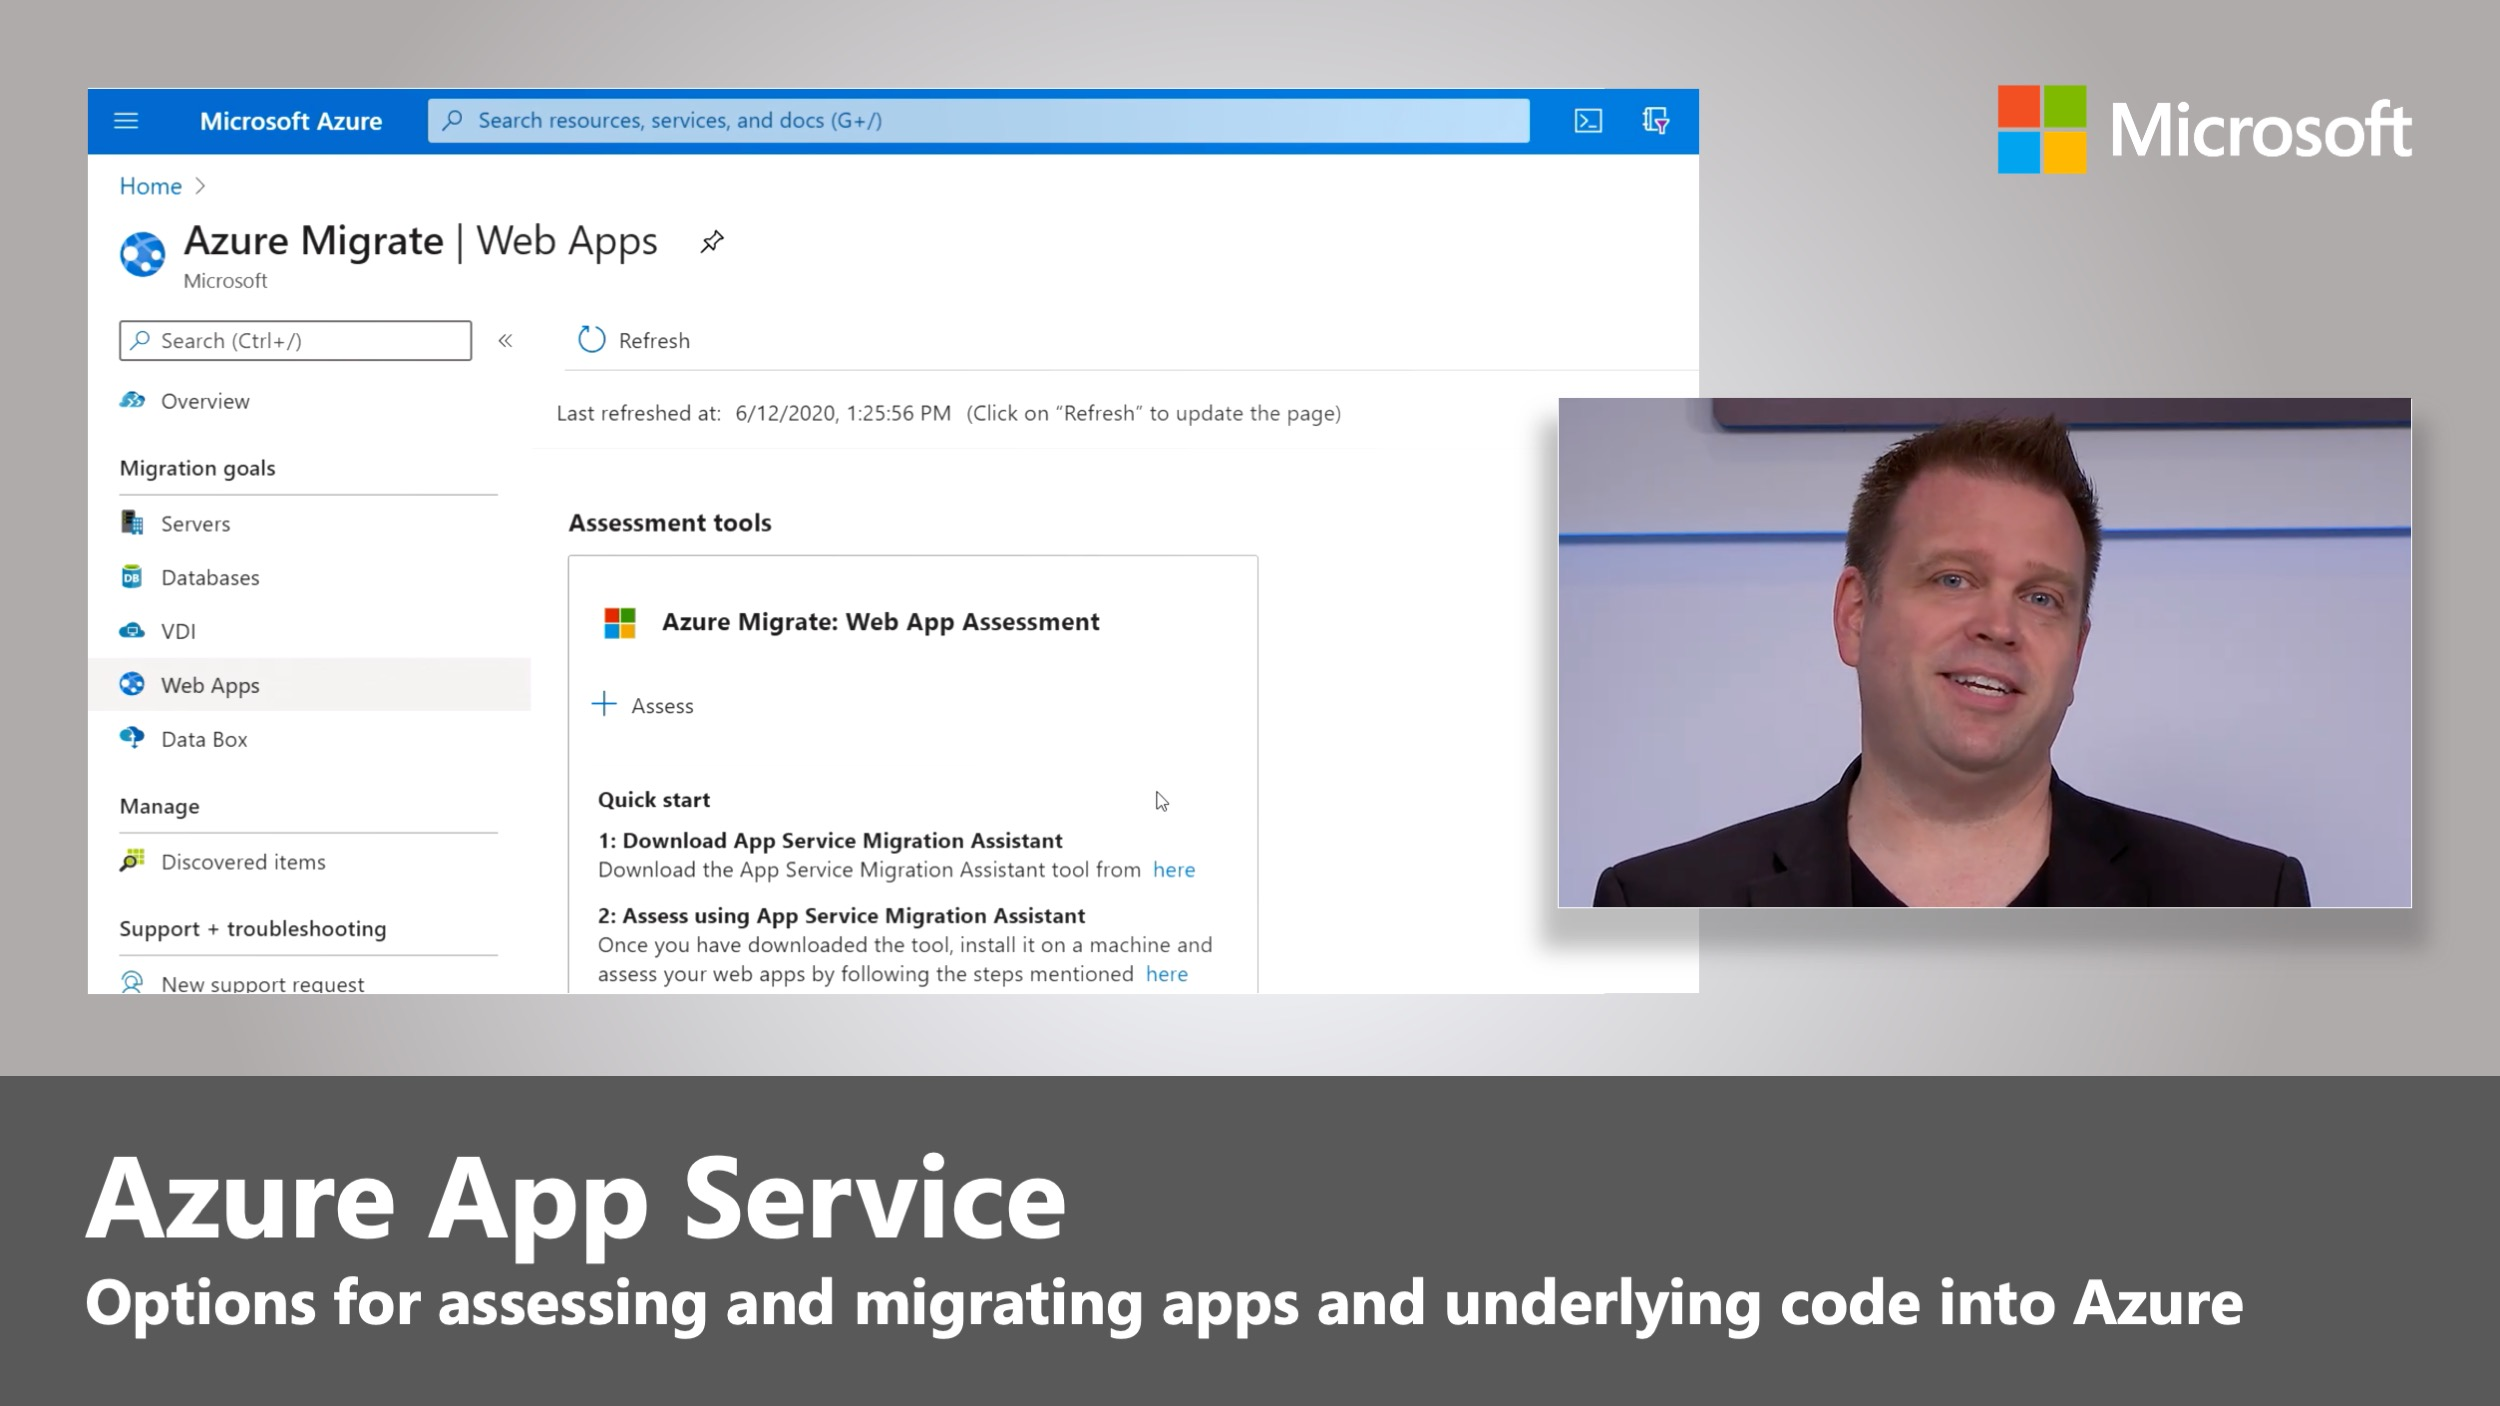 How to migrate web apps to Azure App Service